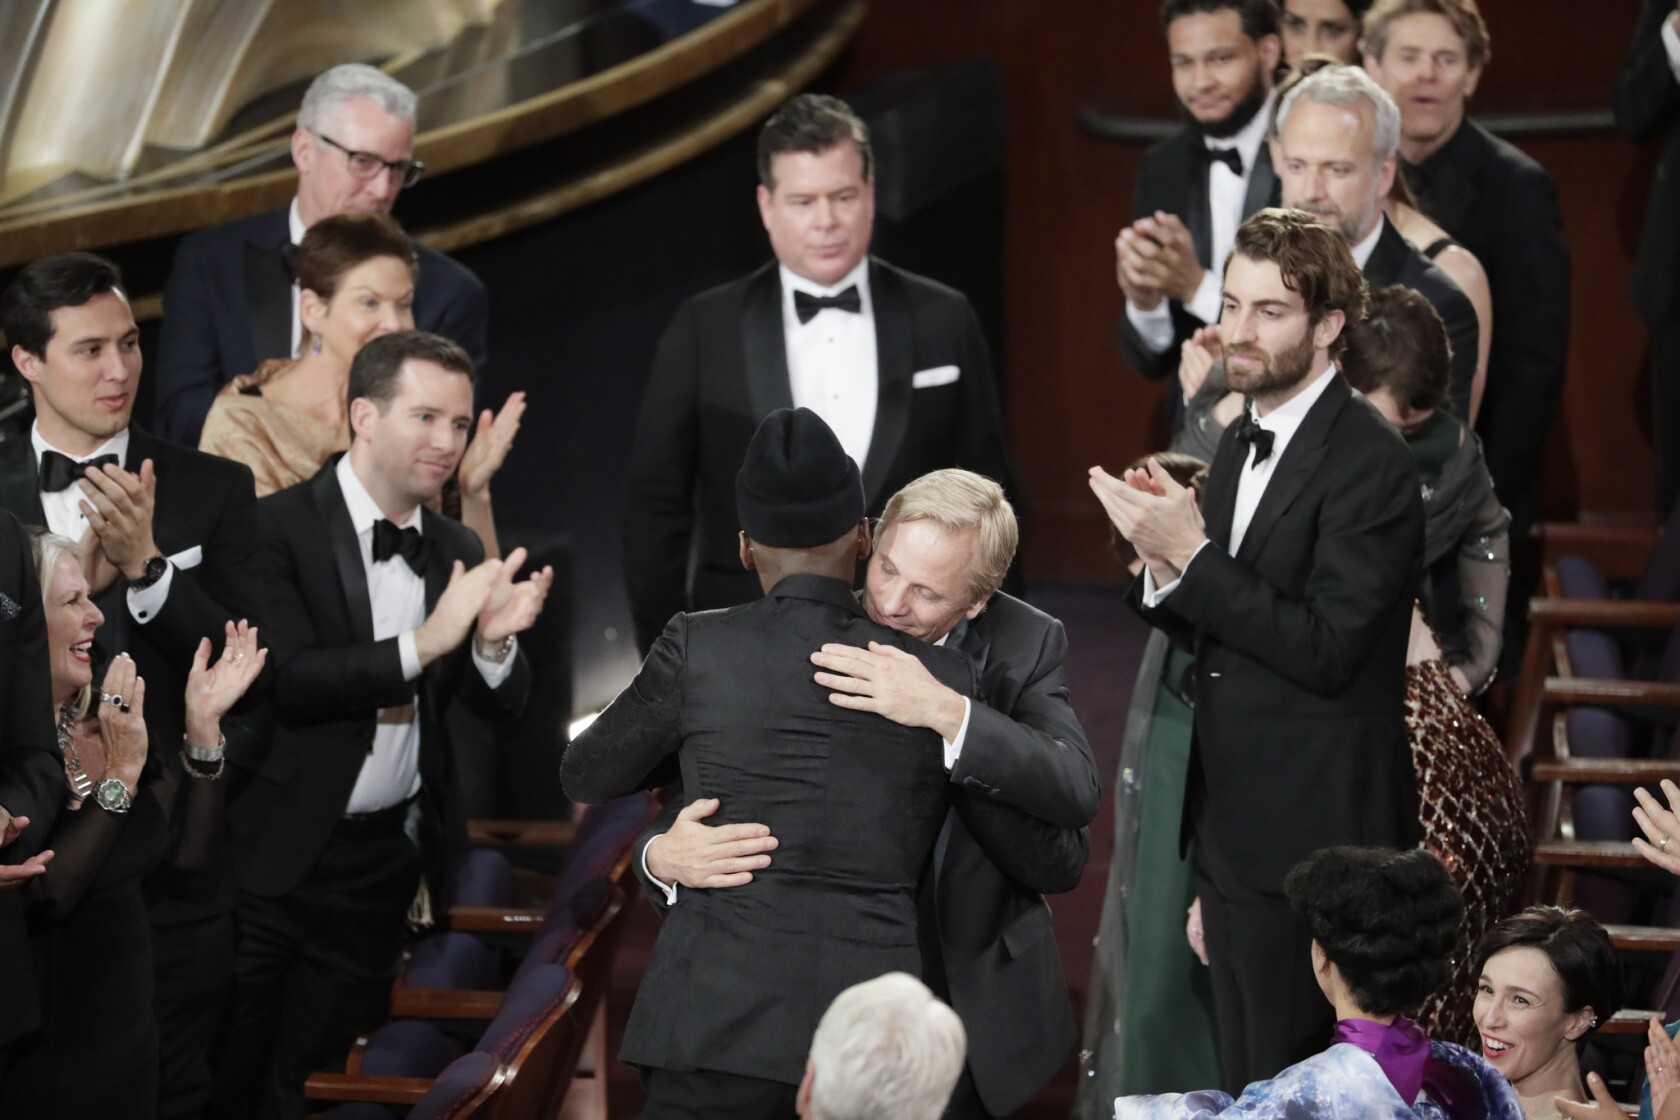 Oscars 2019: 29 6 million viewers watch, a gain of 12% from